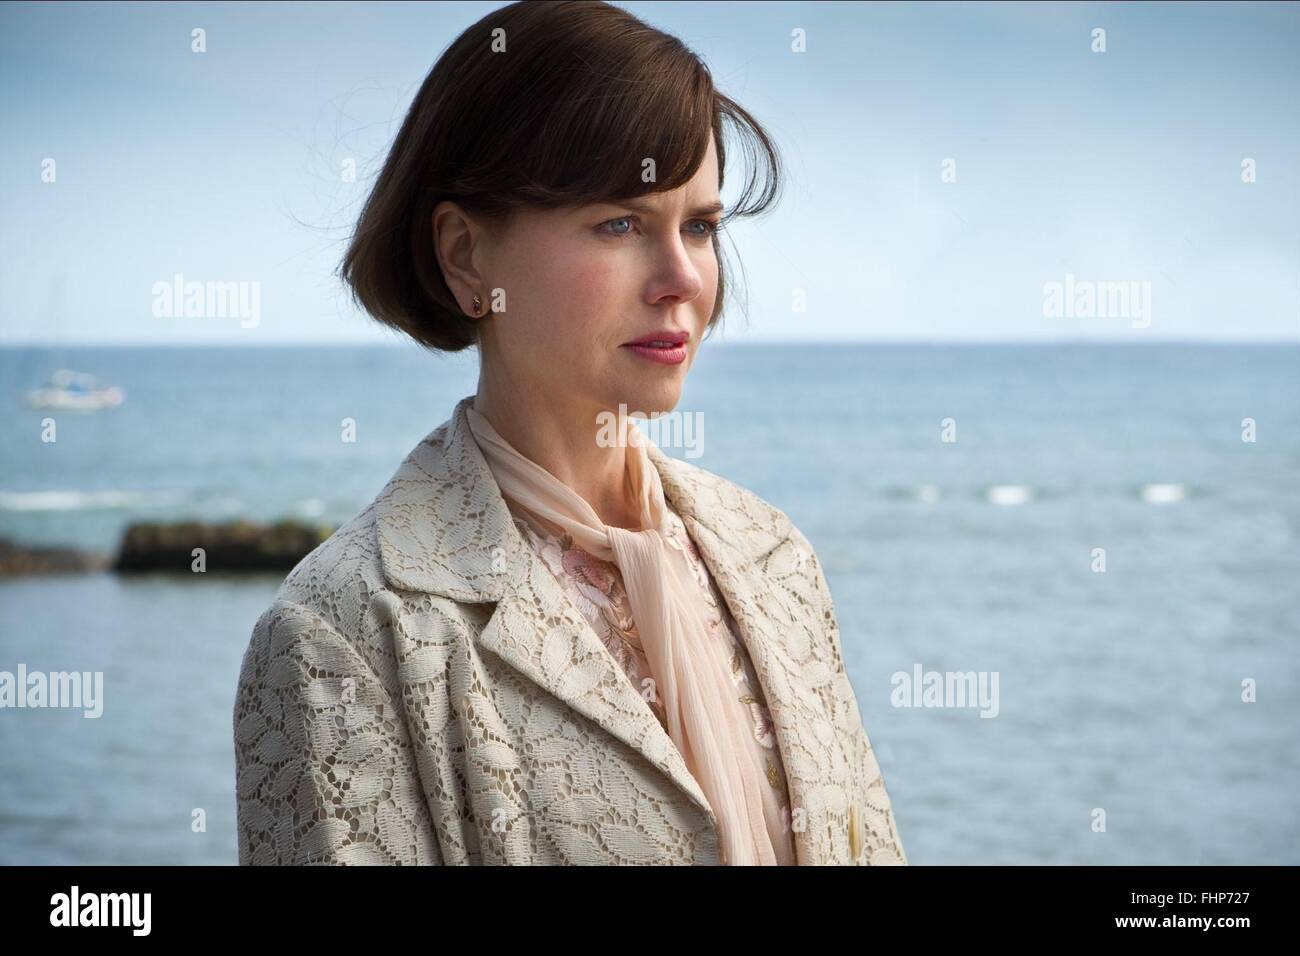 nicole kidman the railway man 2013 stock photo 96989487